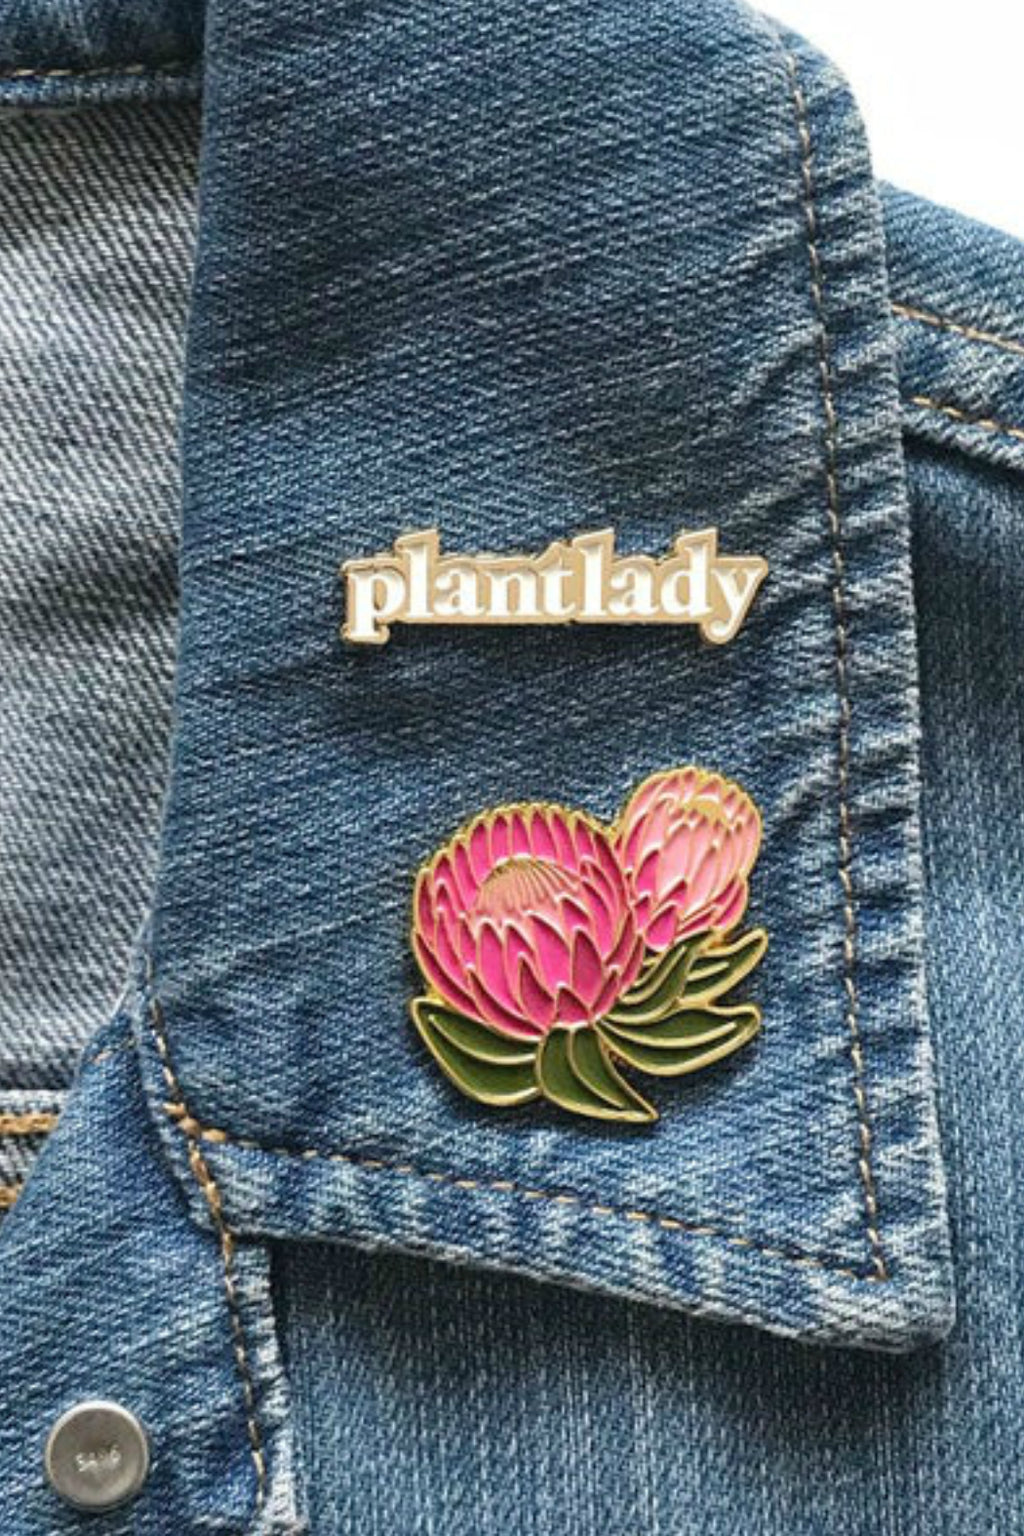 Paper Anchor Co. Plant Lady Lapel Pin